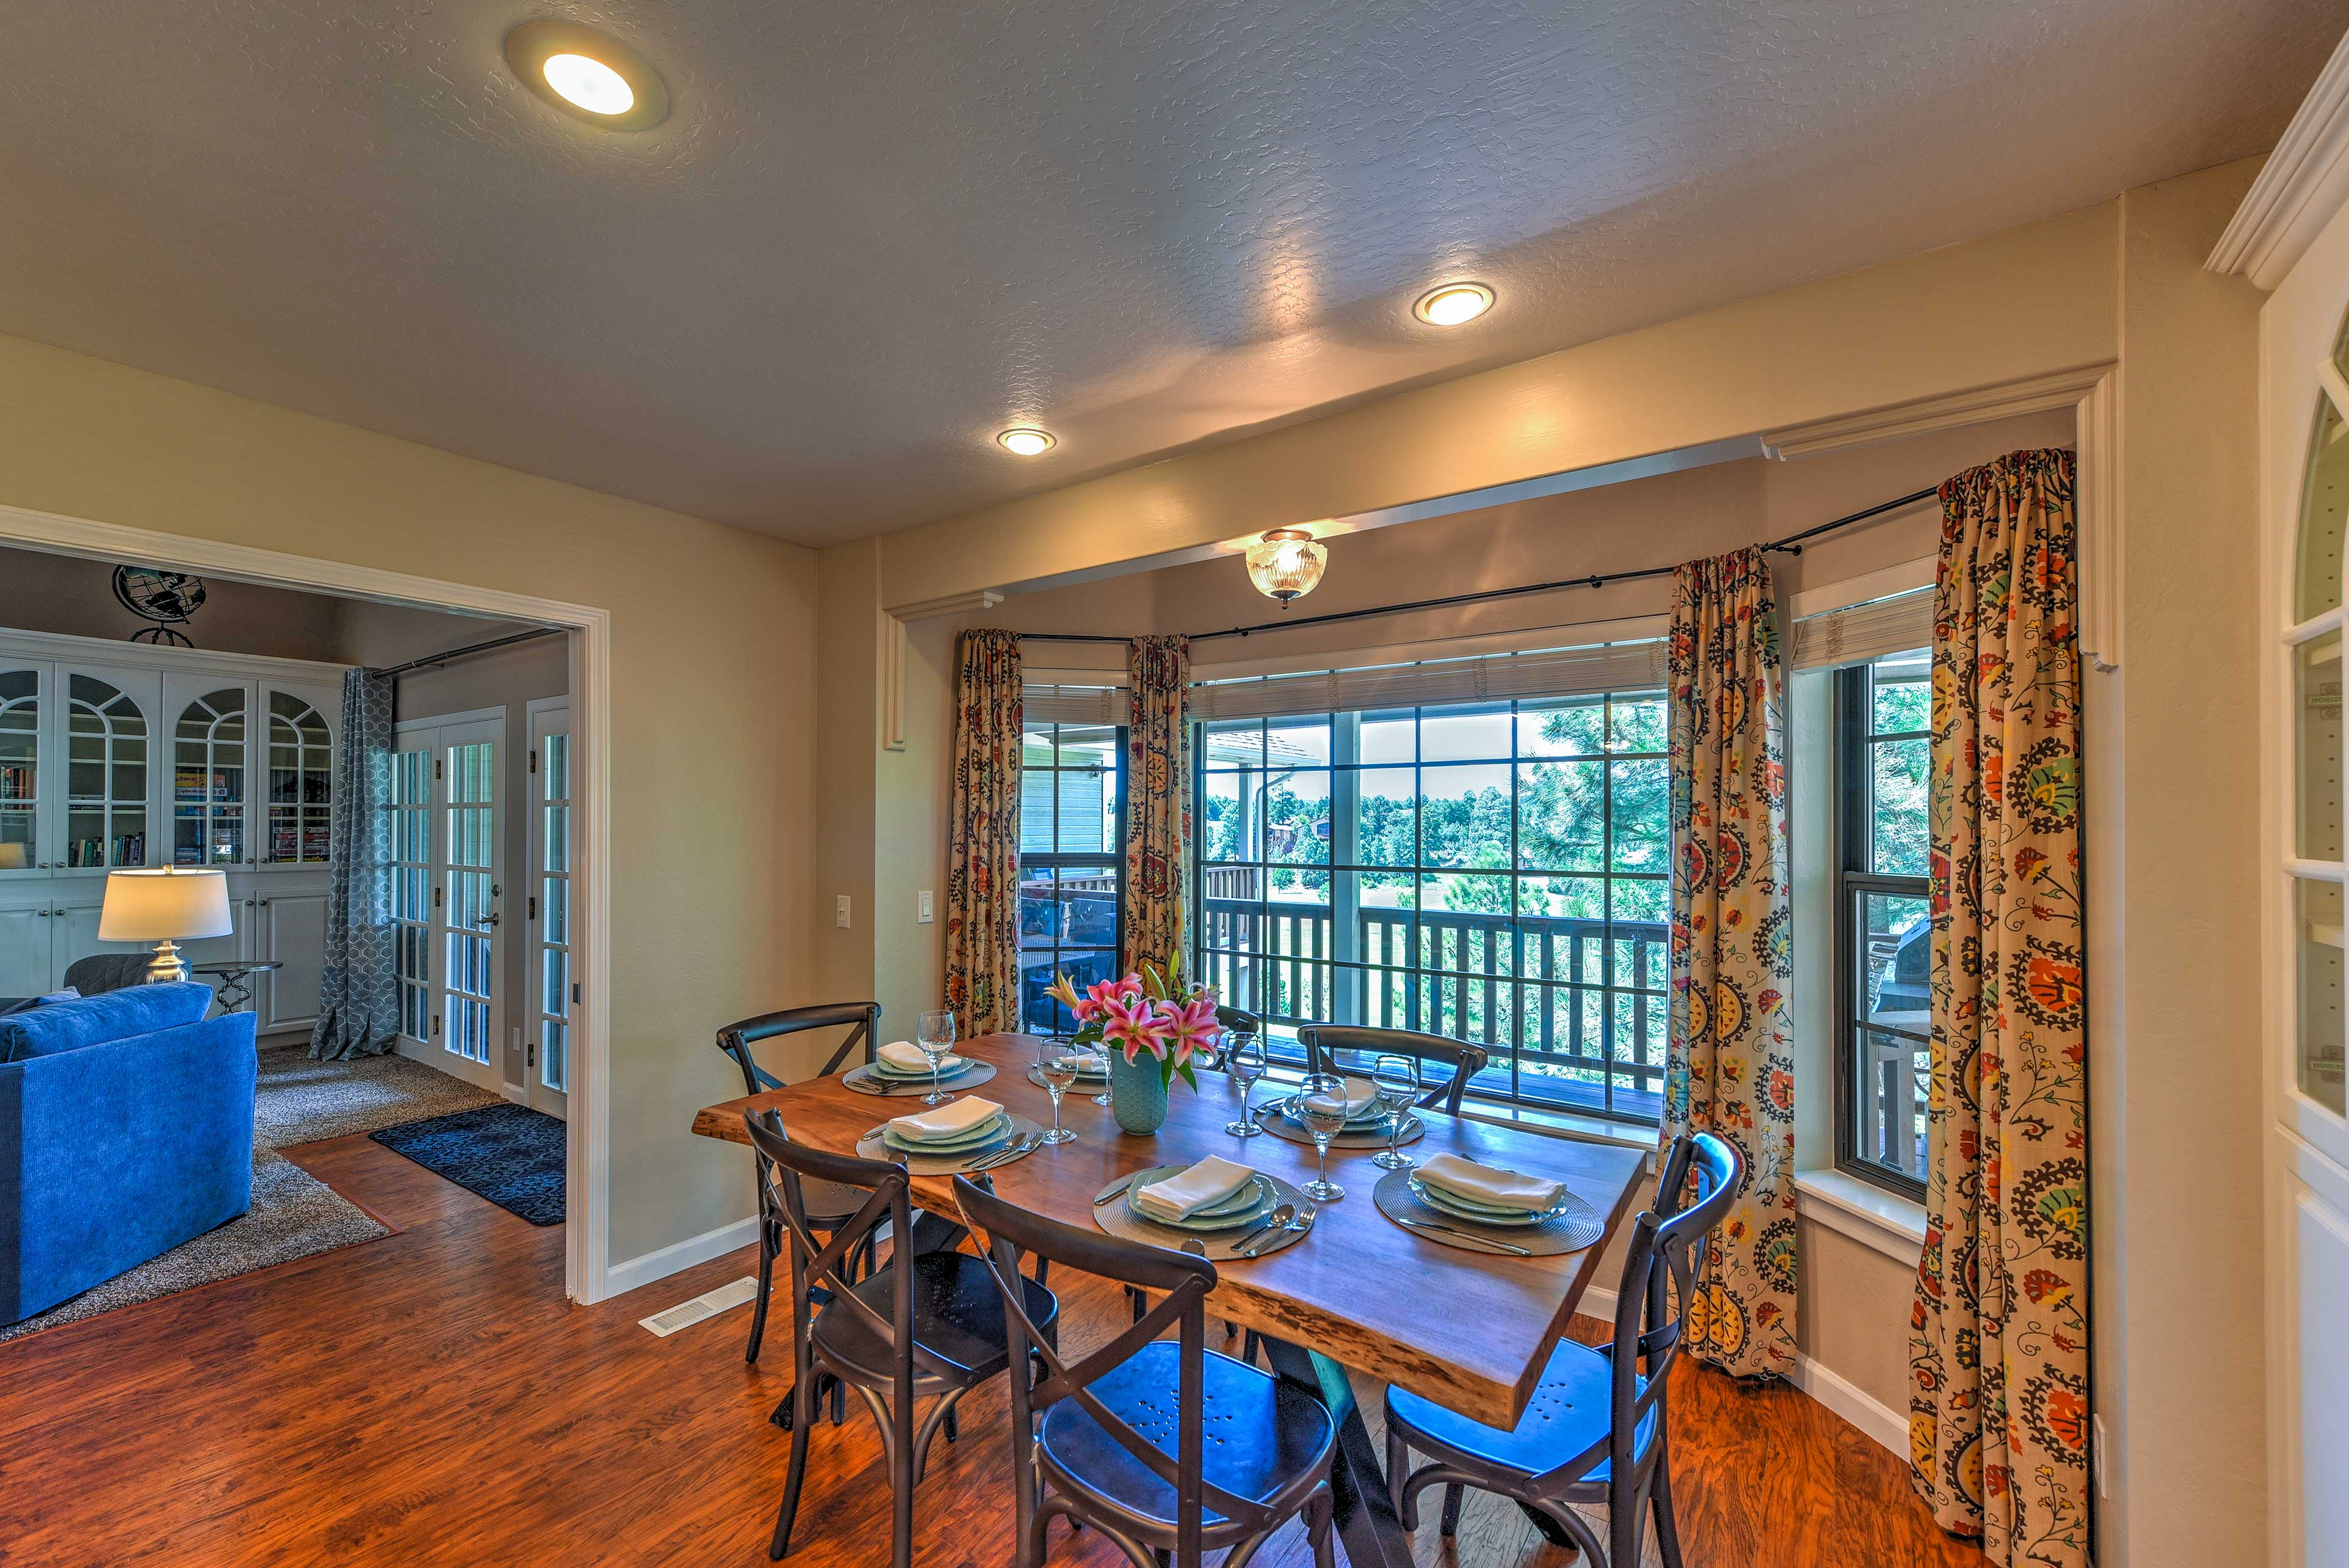 Dine with a view at this table!